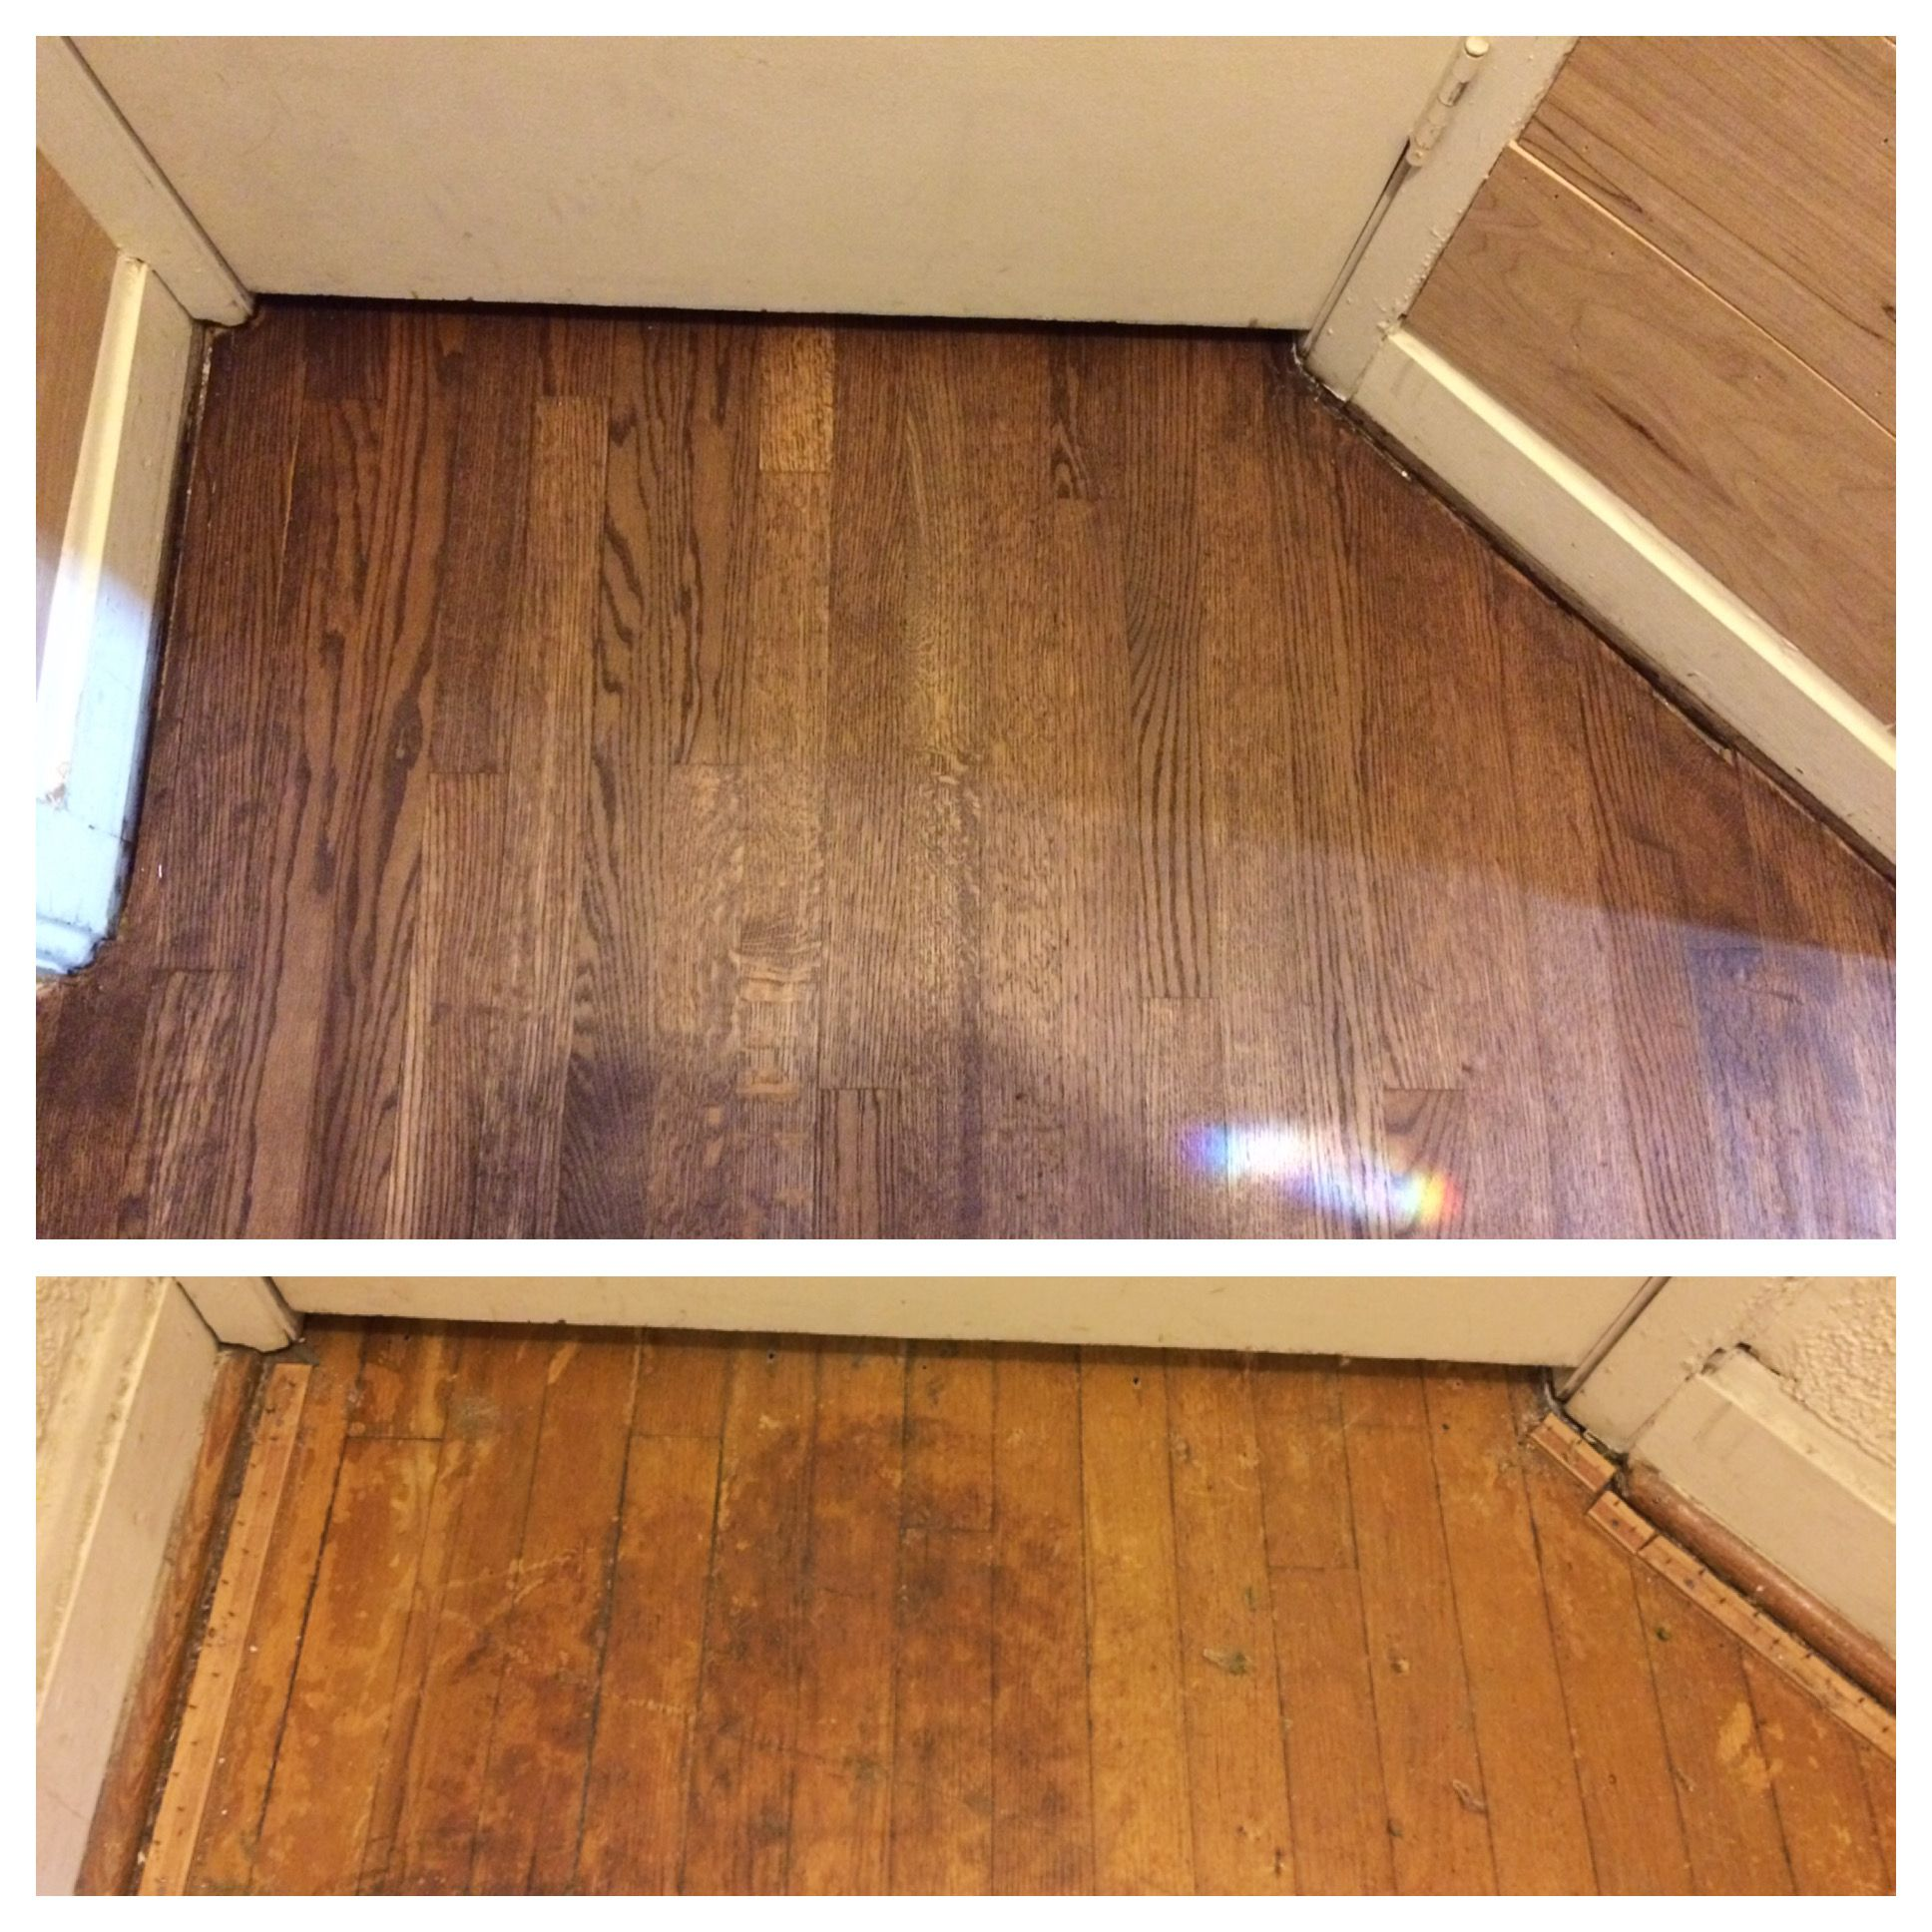 Red oak floor refinished before and after sanded out water stains and finished rubio